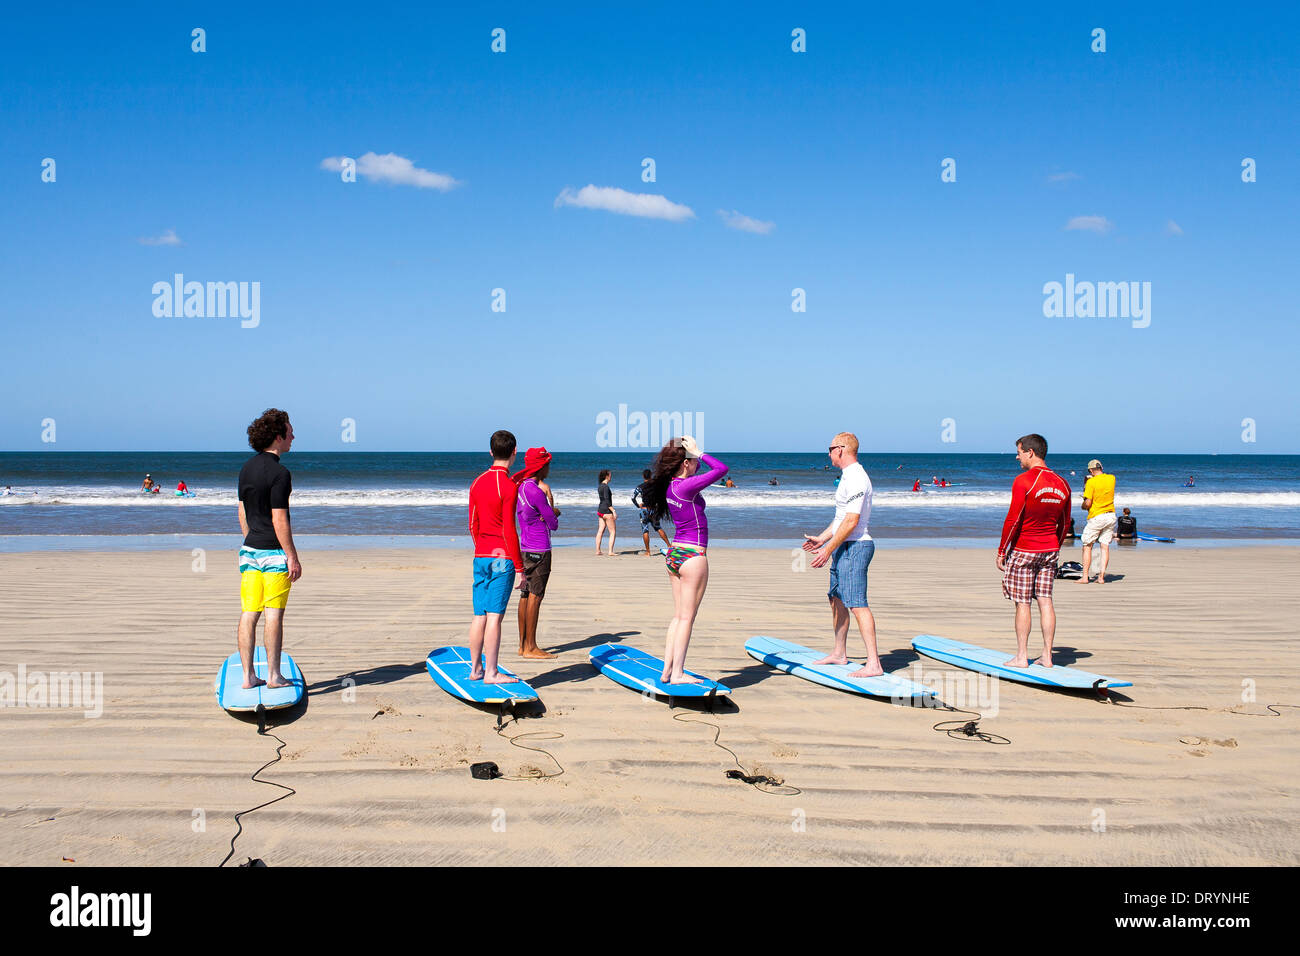 Surfers learn to surf on the beach ready for a surf lesson at a surf school on the beach of Playa Tamarindo in Guanacaste. - Stock Image